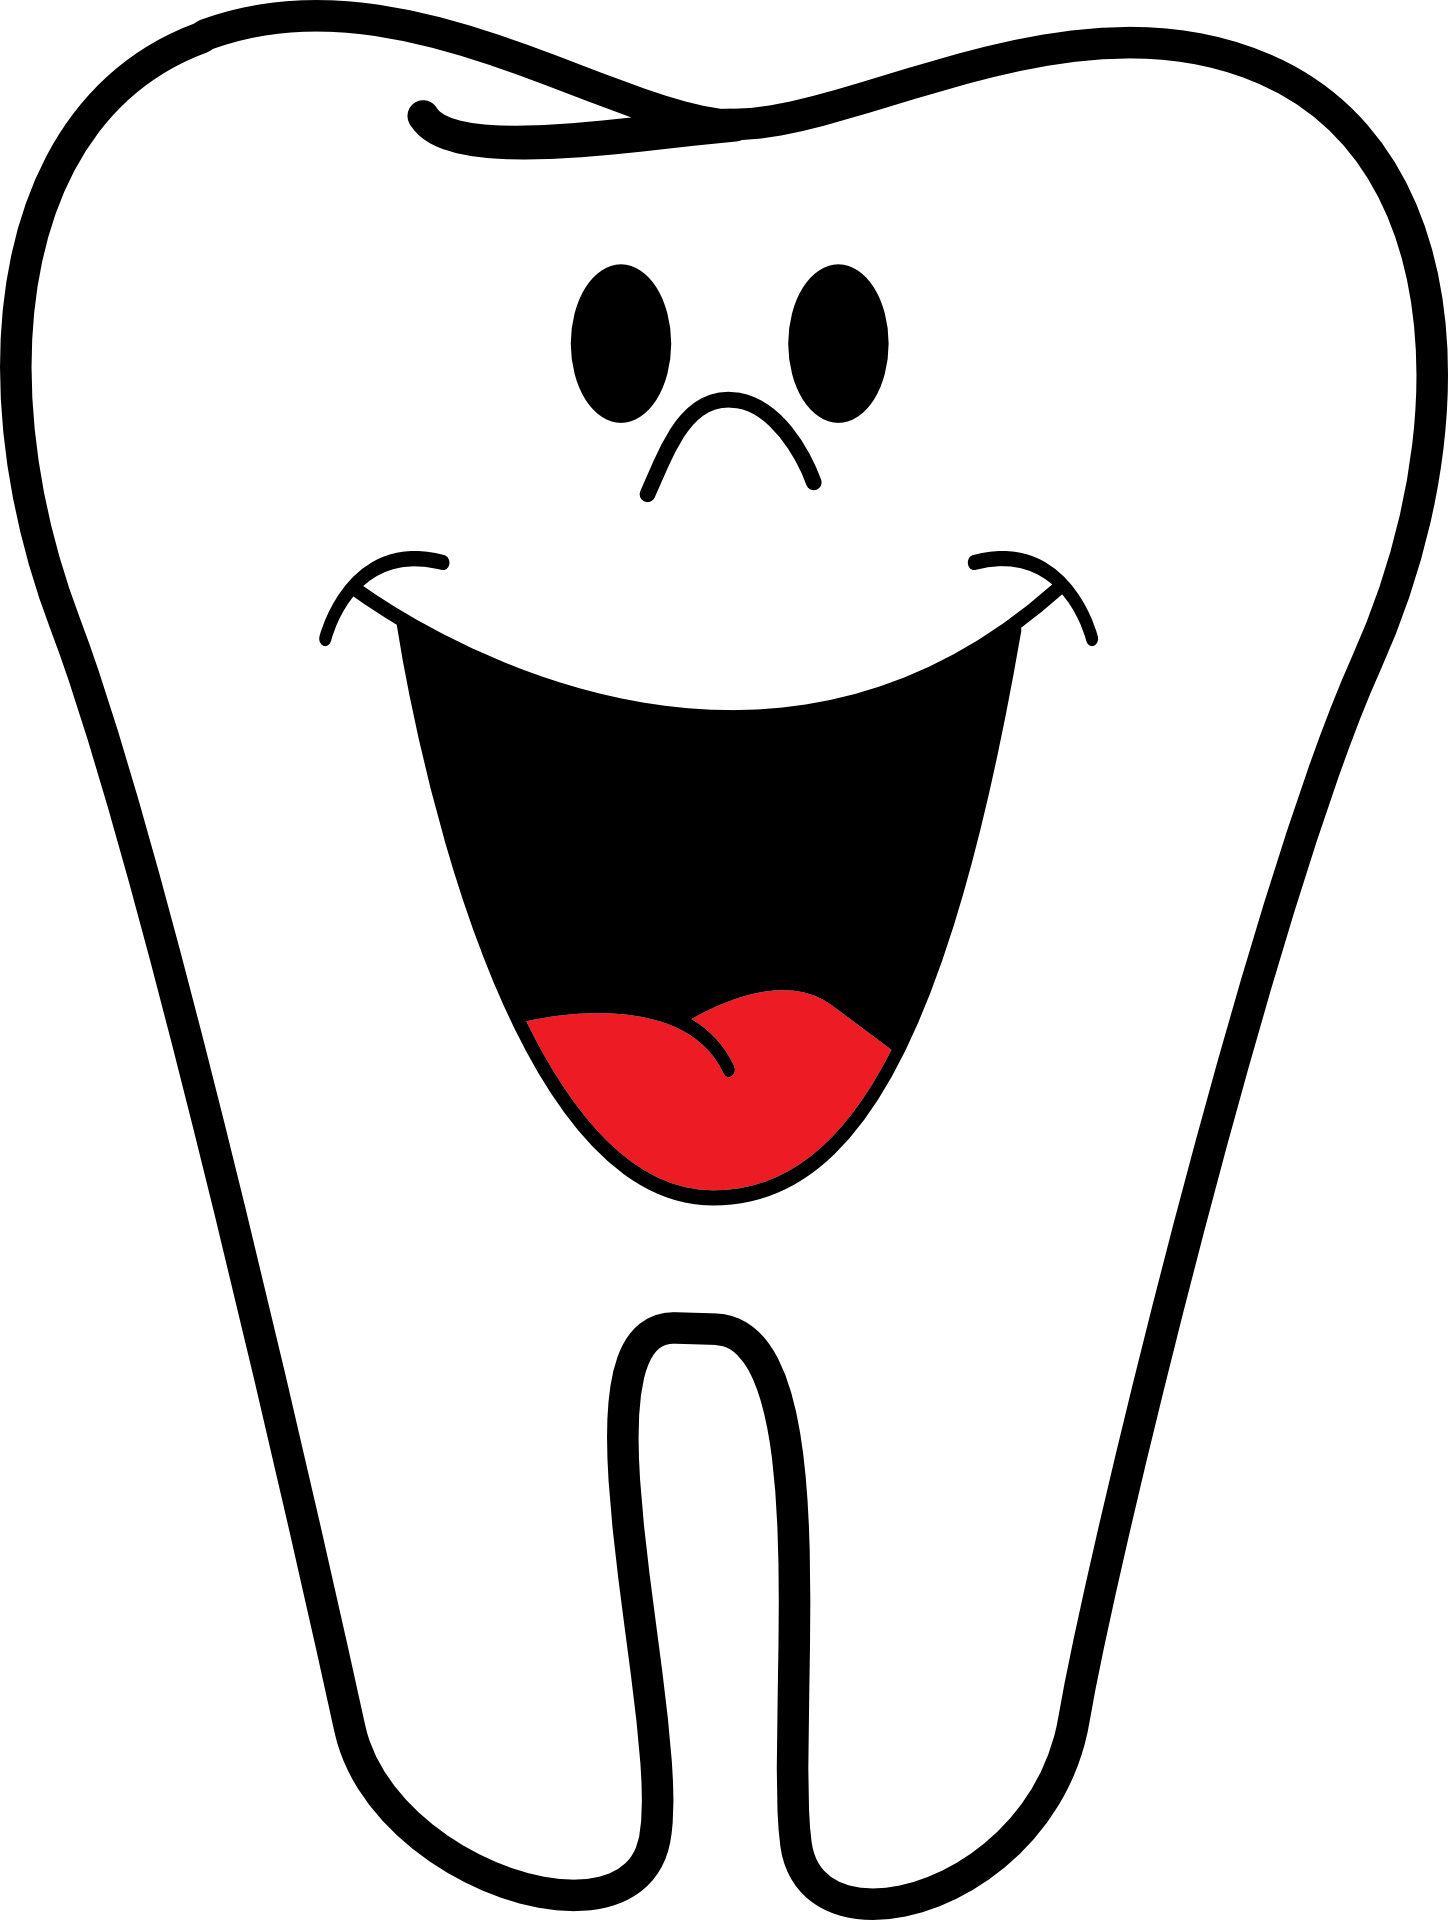 A cartoon tooth smiling.